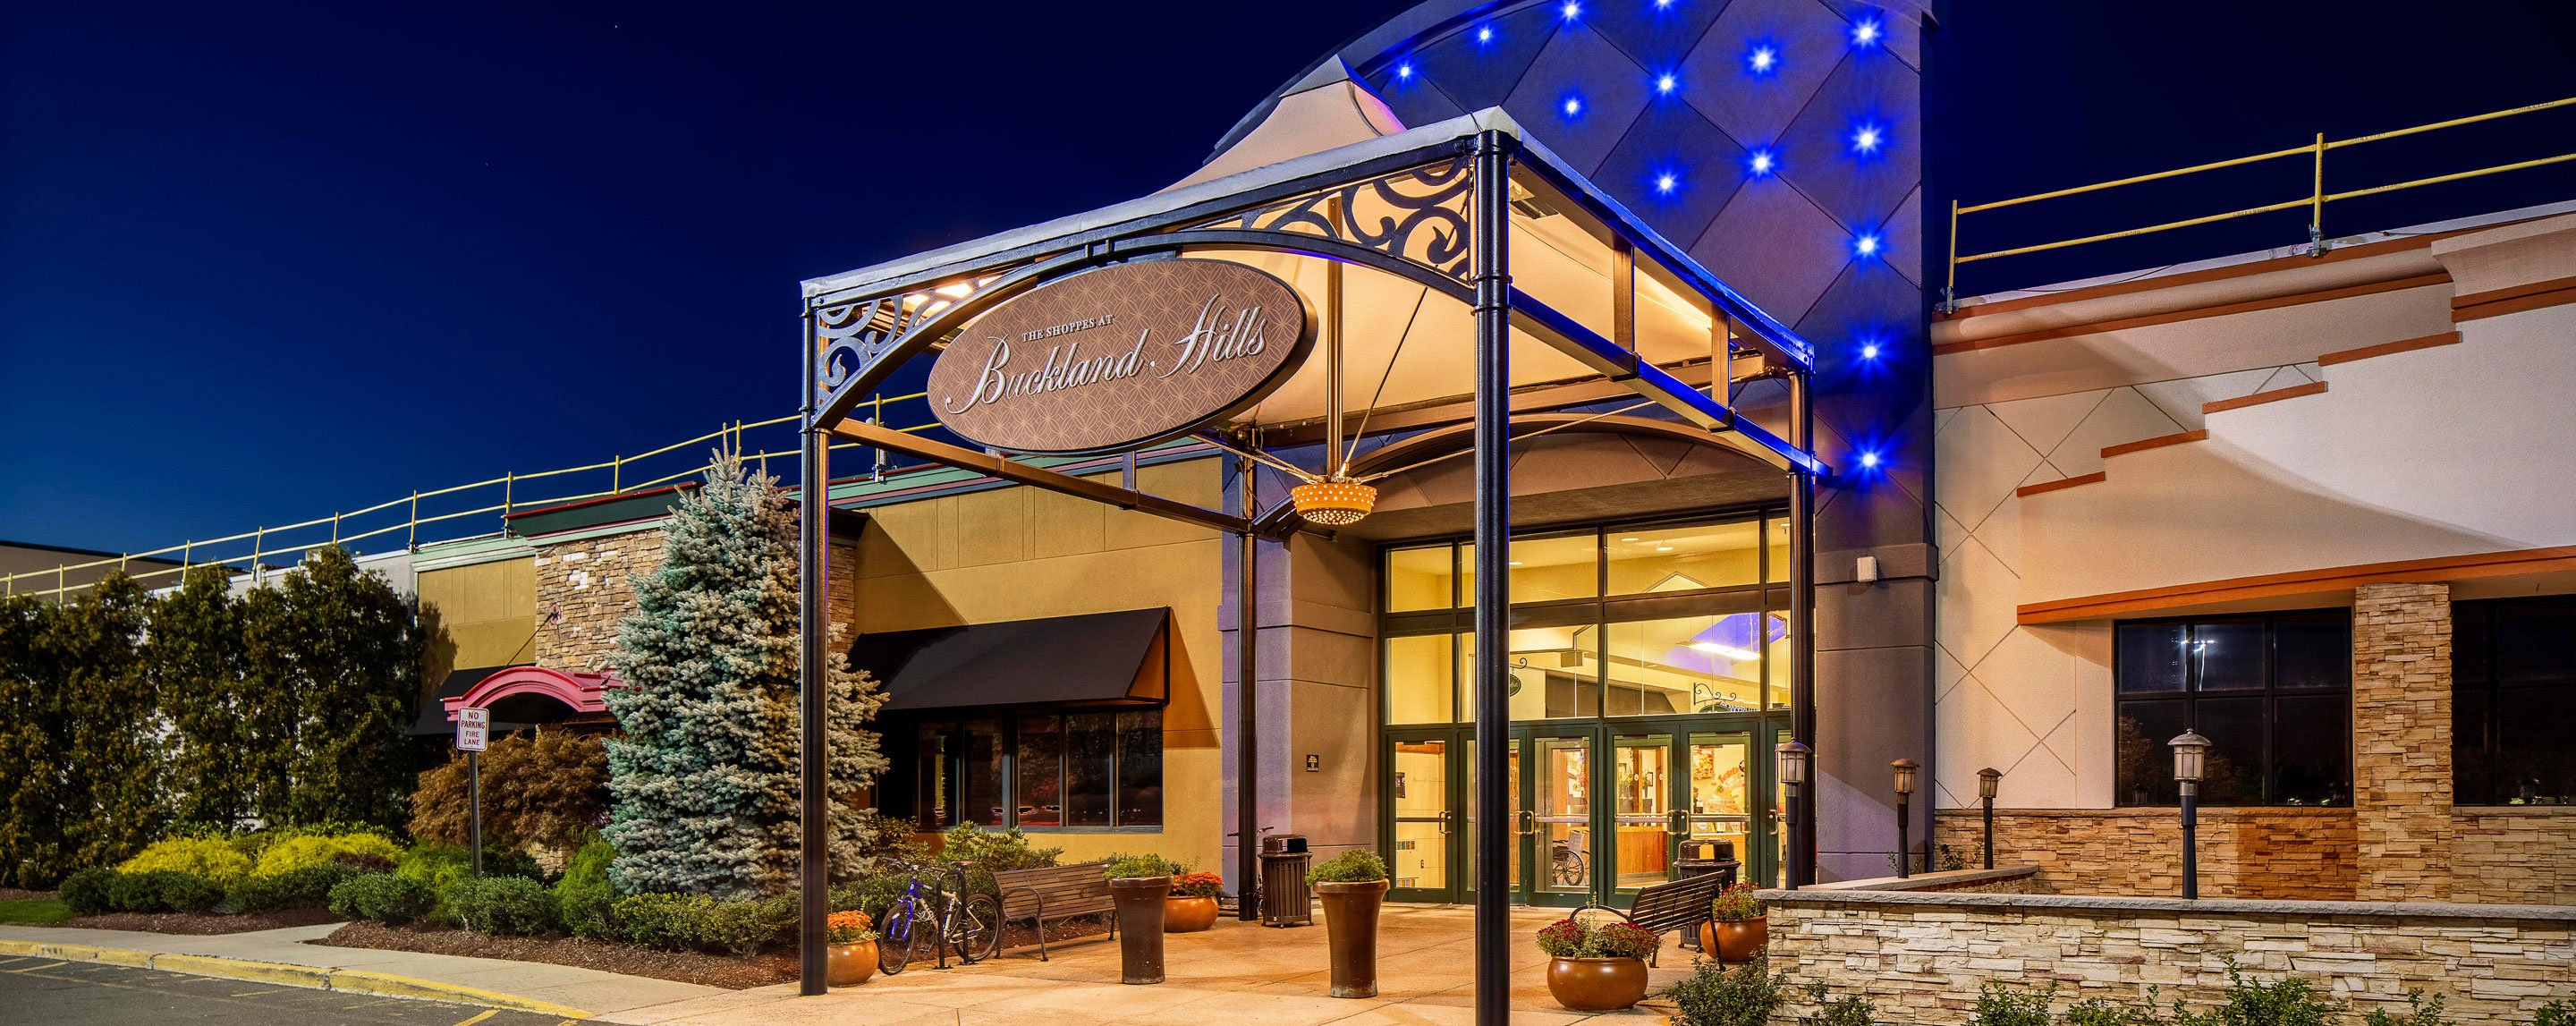 A sign with blue lighting illuminated the building near the Shoppes at Buckland Hills at nightfall.